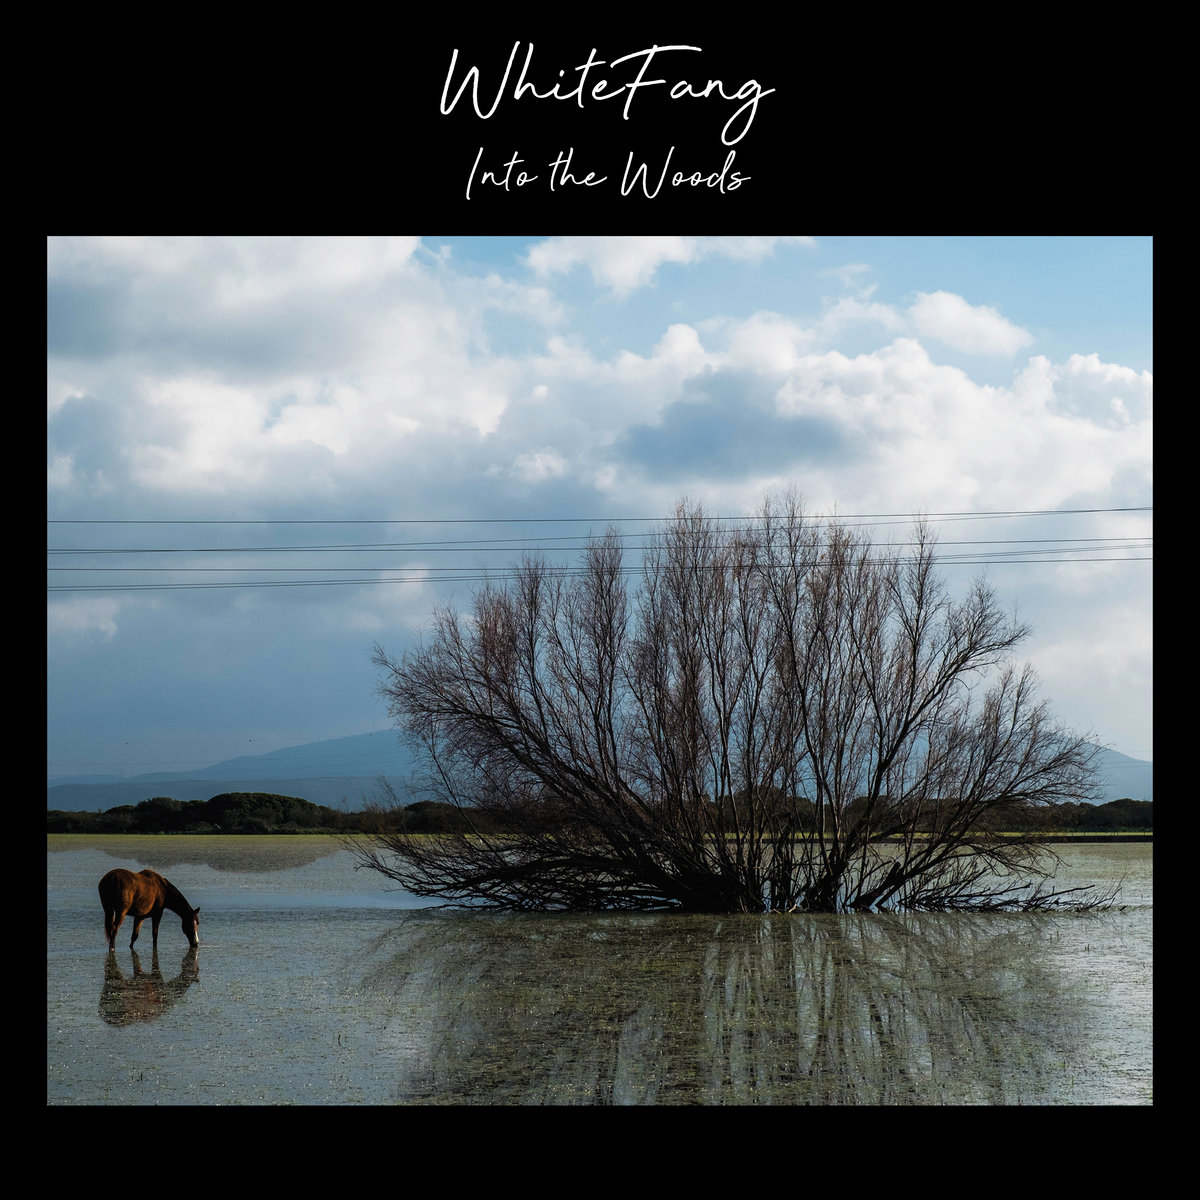 WhiteFang - Into The Woods - Luca Cadeddu Palmas - Talk About Records - Bandcamp - 2021 - Sa Scena - 15 gennaio 2021